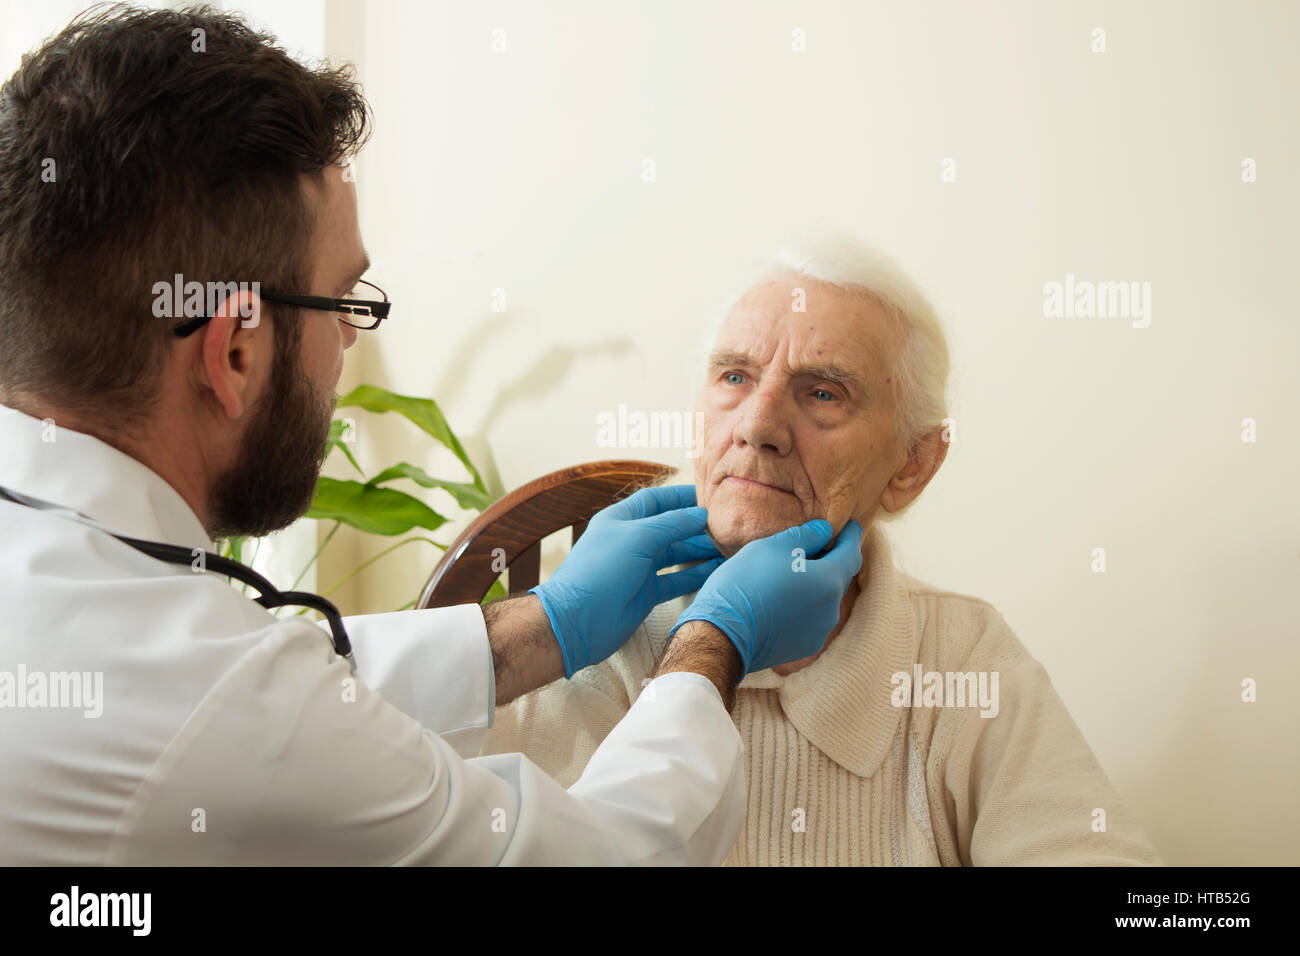 The doctor examines the lymph nodes on the neck of an old woman. - Stock Image